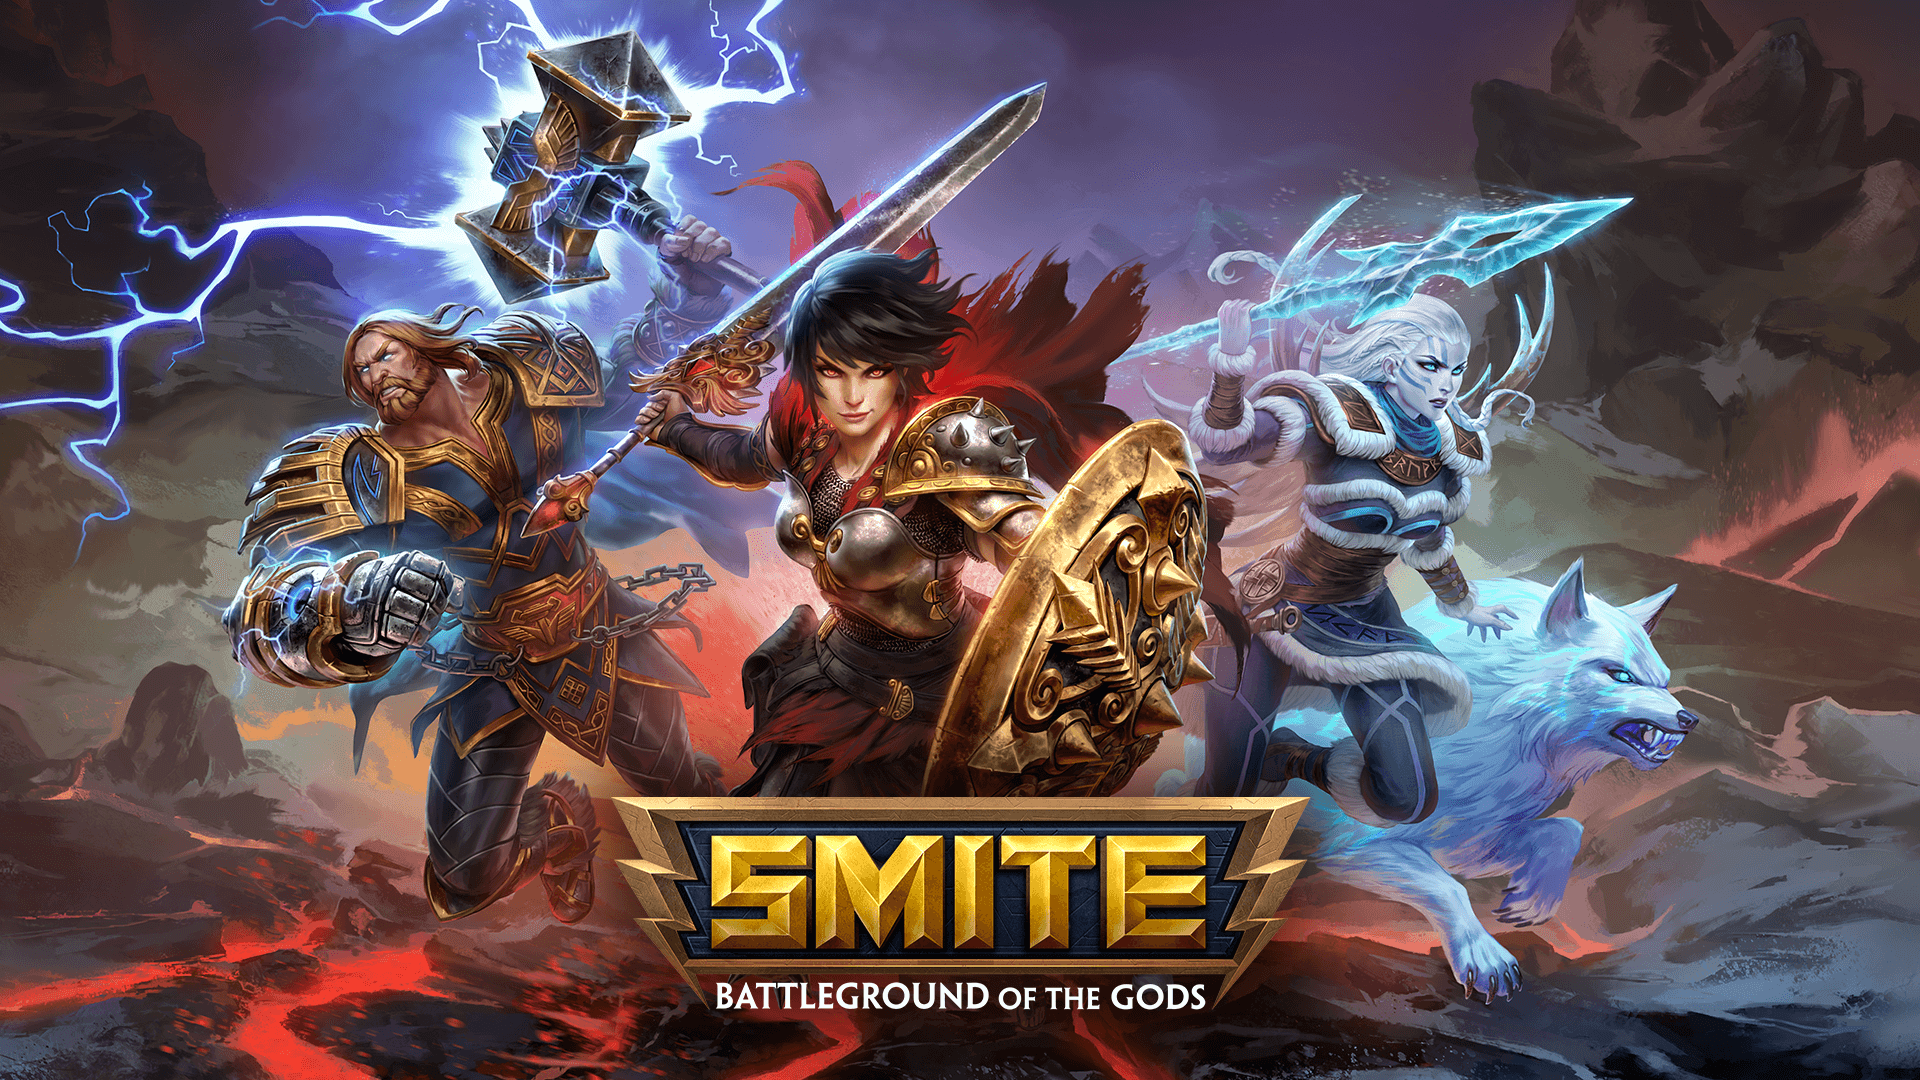 Free Gems Smite Sword And Sorcery Smite Character Illustration